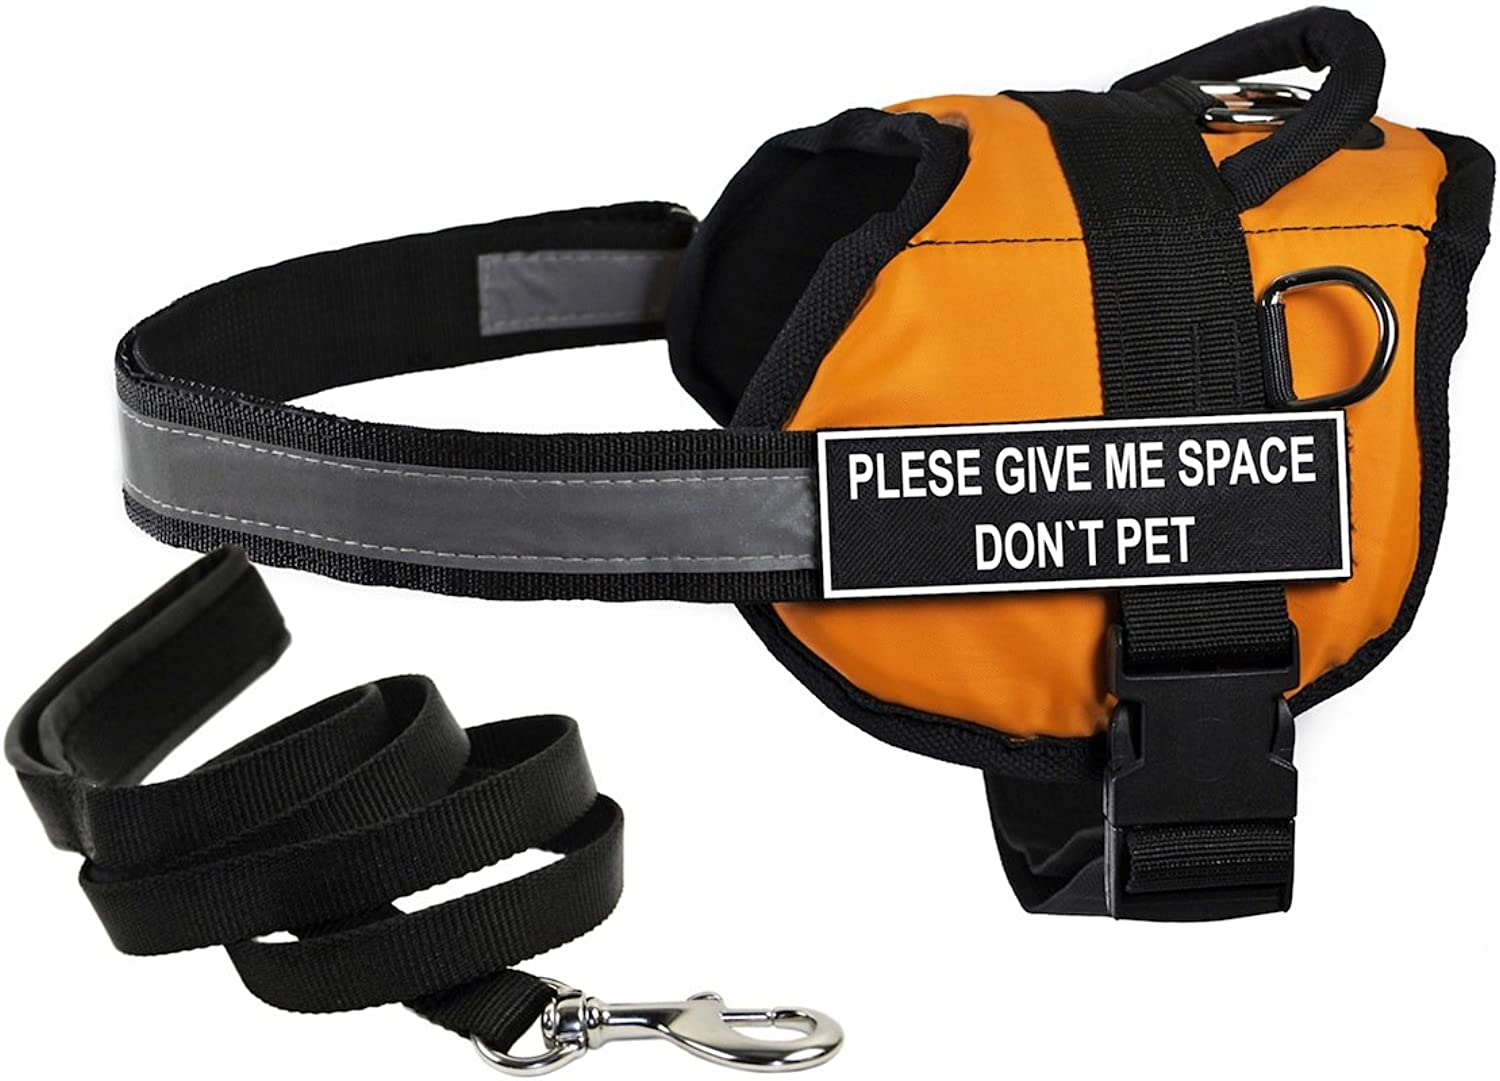 Dean & Tyler's DT Works orange PLEASE GIVE ME SPACE DO NOT PET Harness, XSmall, with 6 ft Padded Puppy Leash.